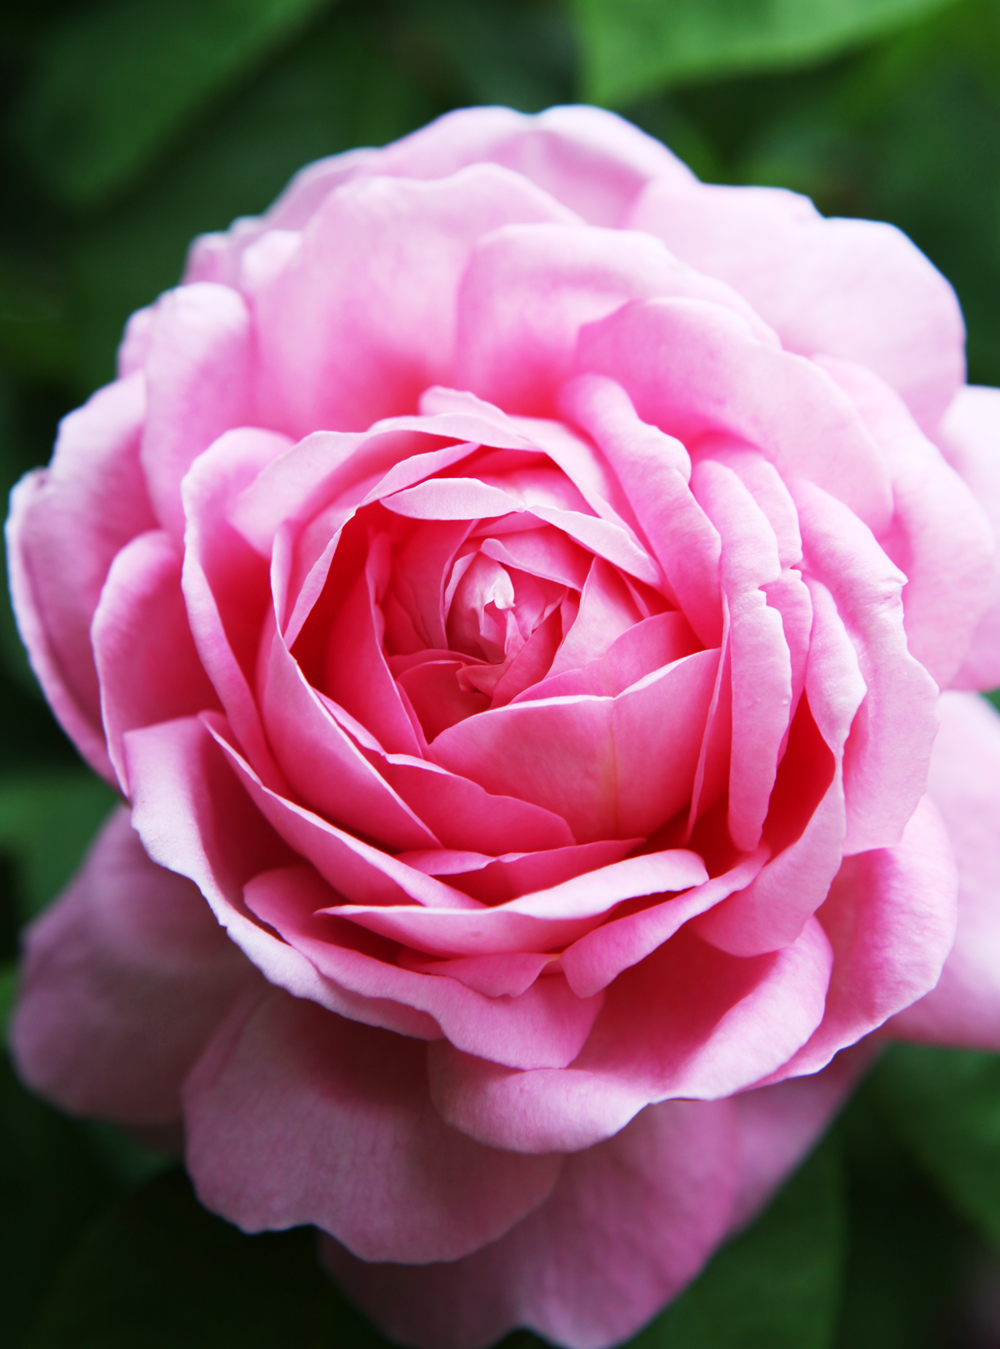 My favourite Constance Spry rose - Jane Cumberbatch's Pure Style Online Tips on Blogging